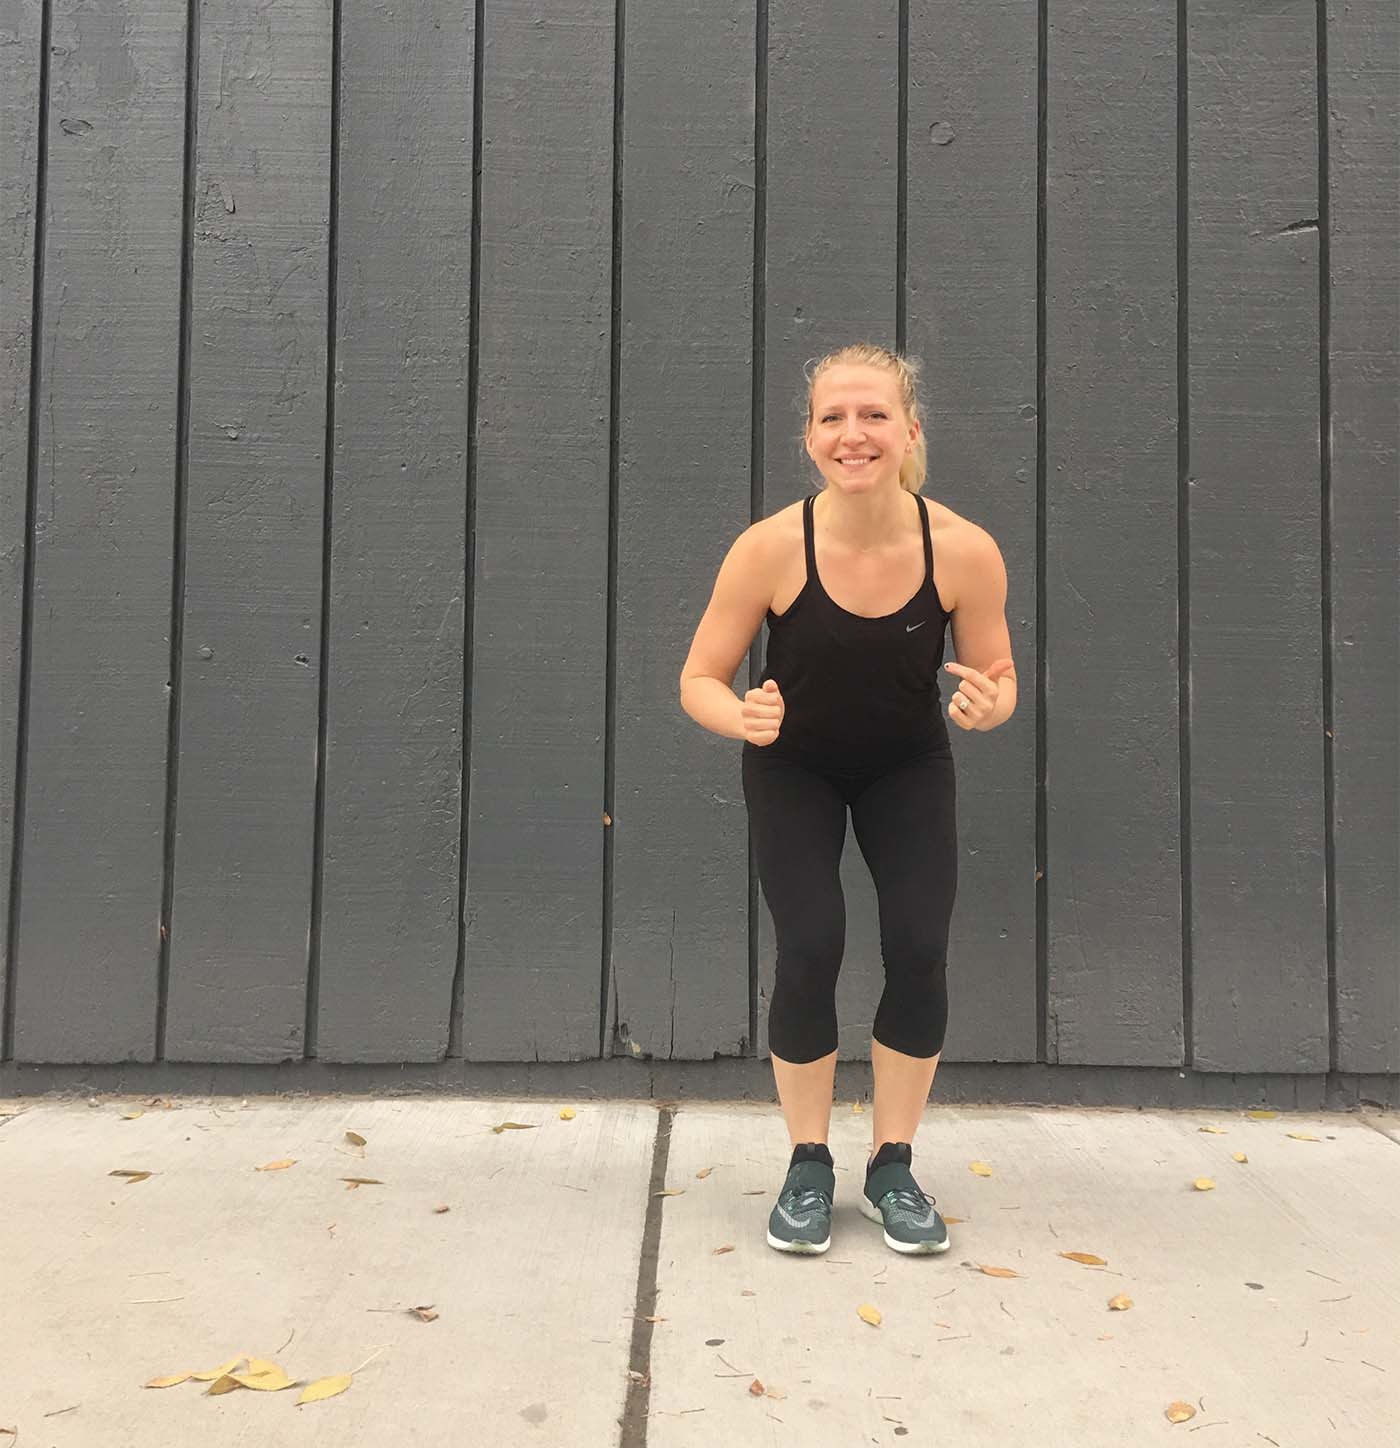 asweatlife_a-30-minute-workout-to-do-on-the-road-or-wherever-you-are_lateral-hops_3